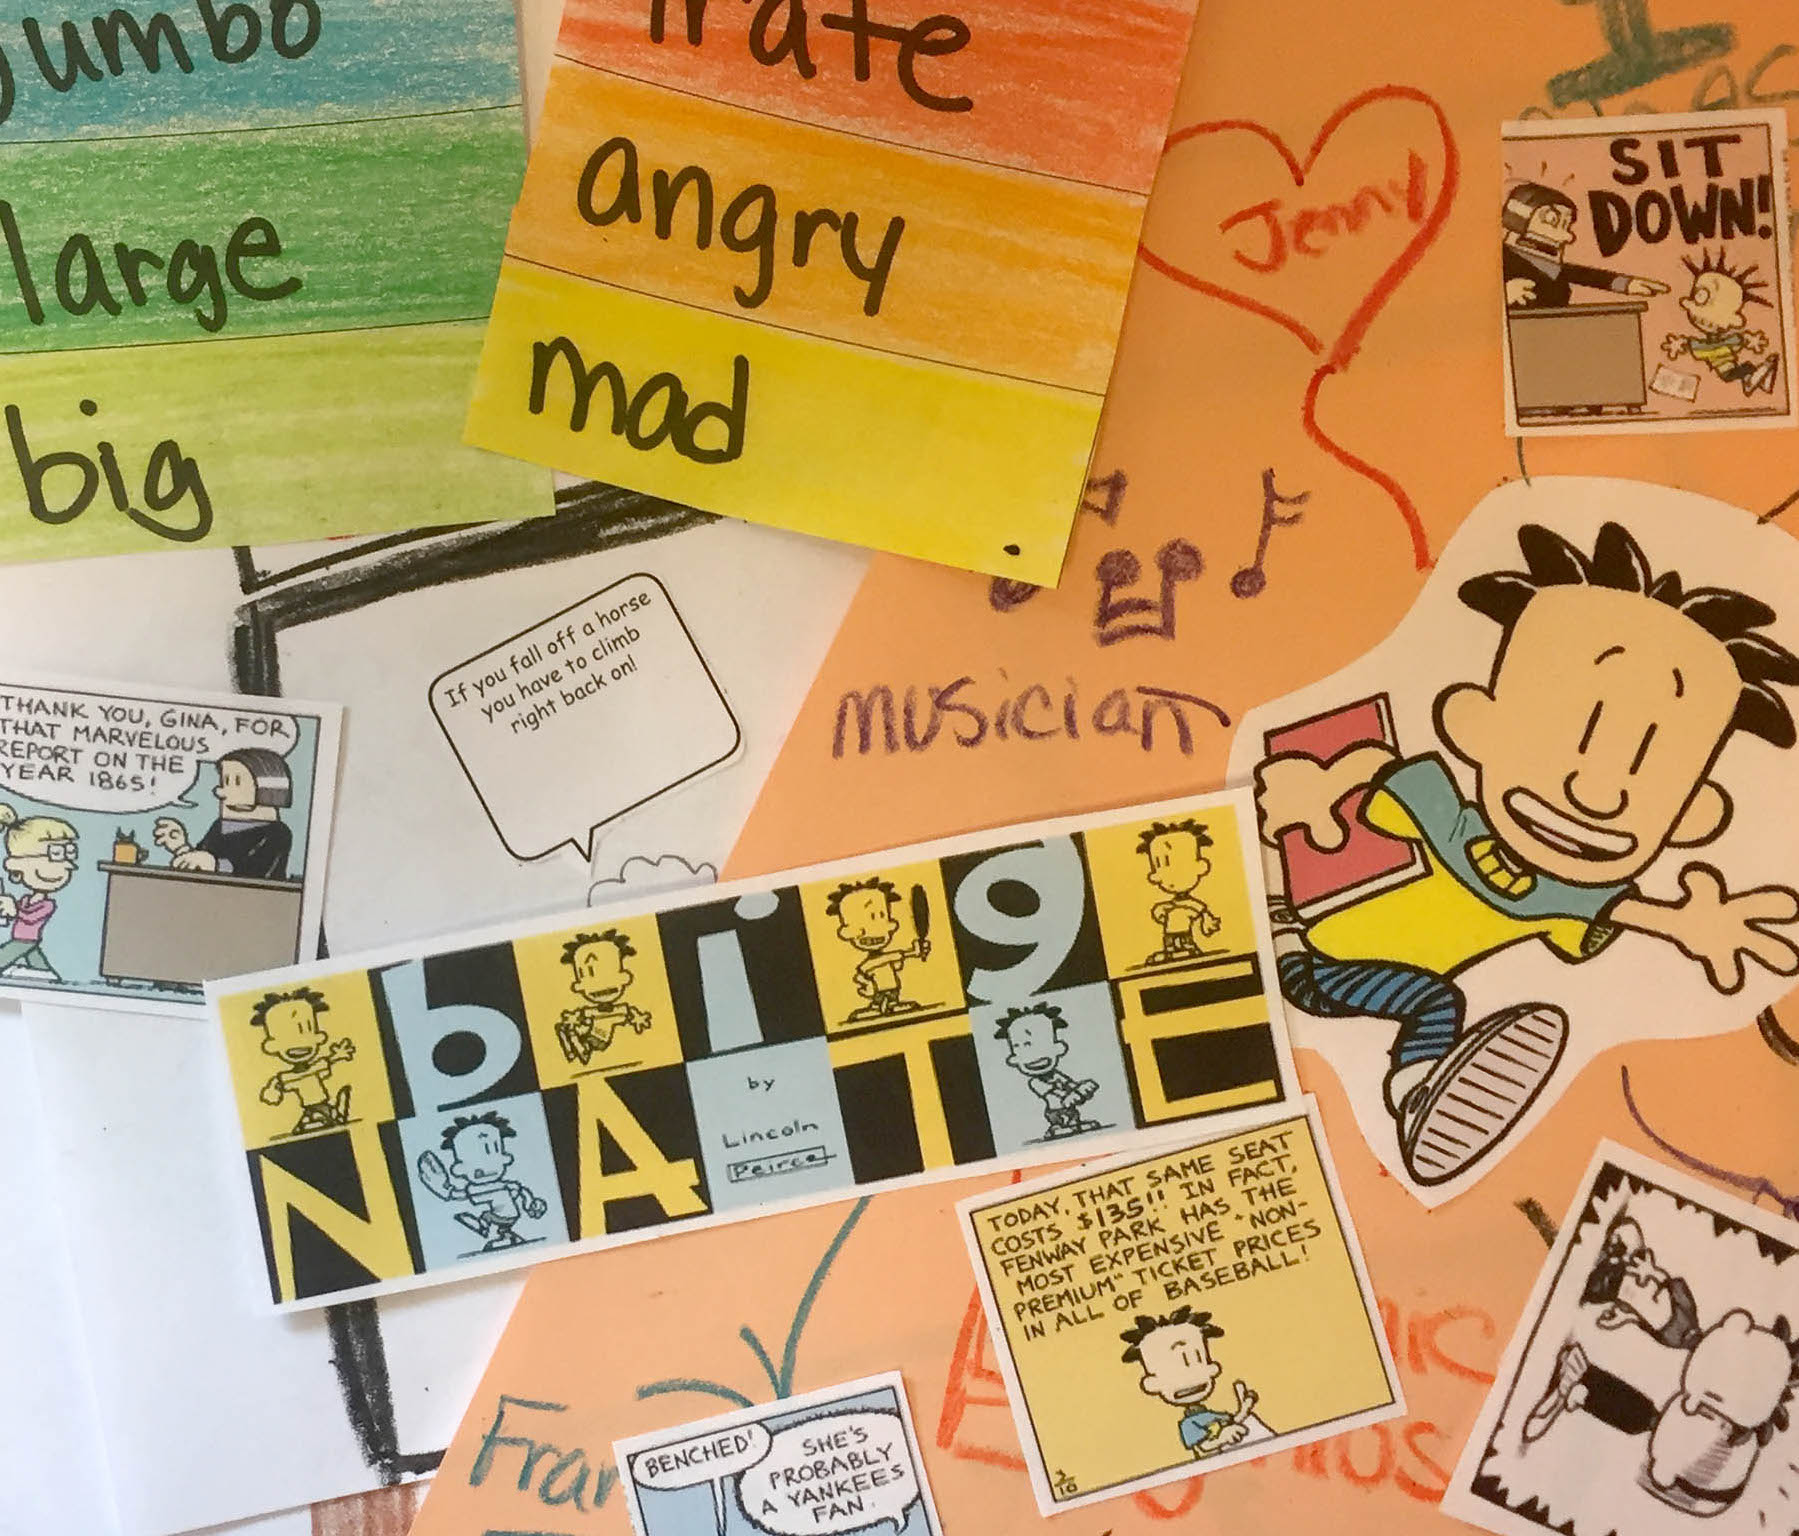 13 Big Ideas For Big Nate And Other Graphic Novels Scholastic